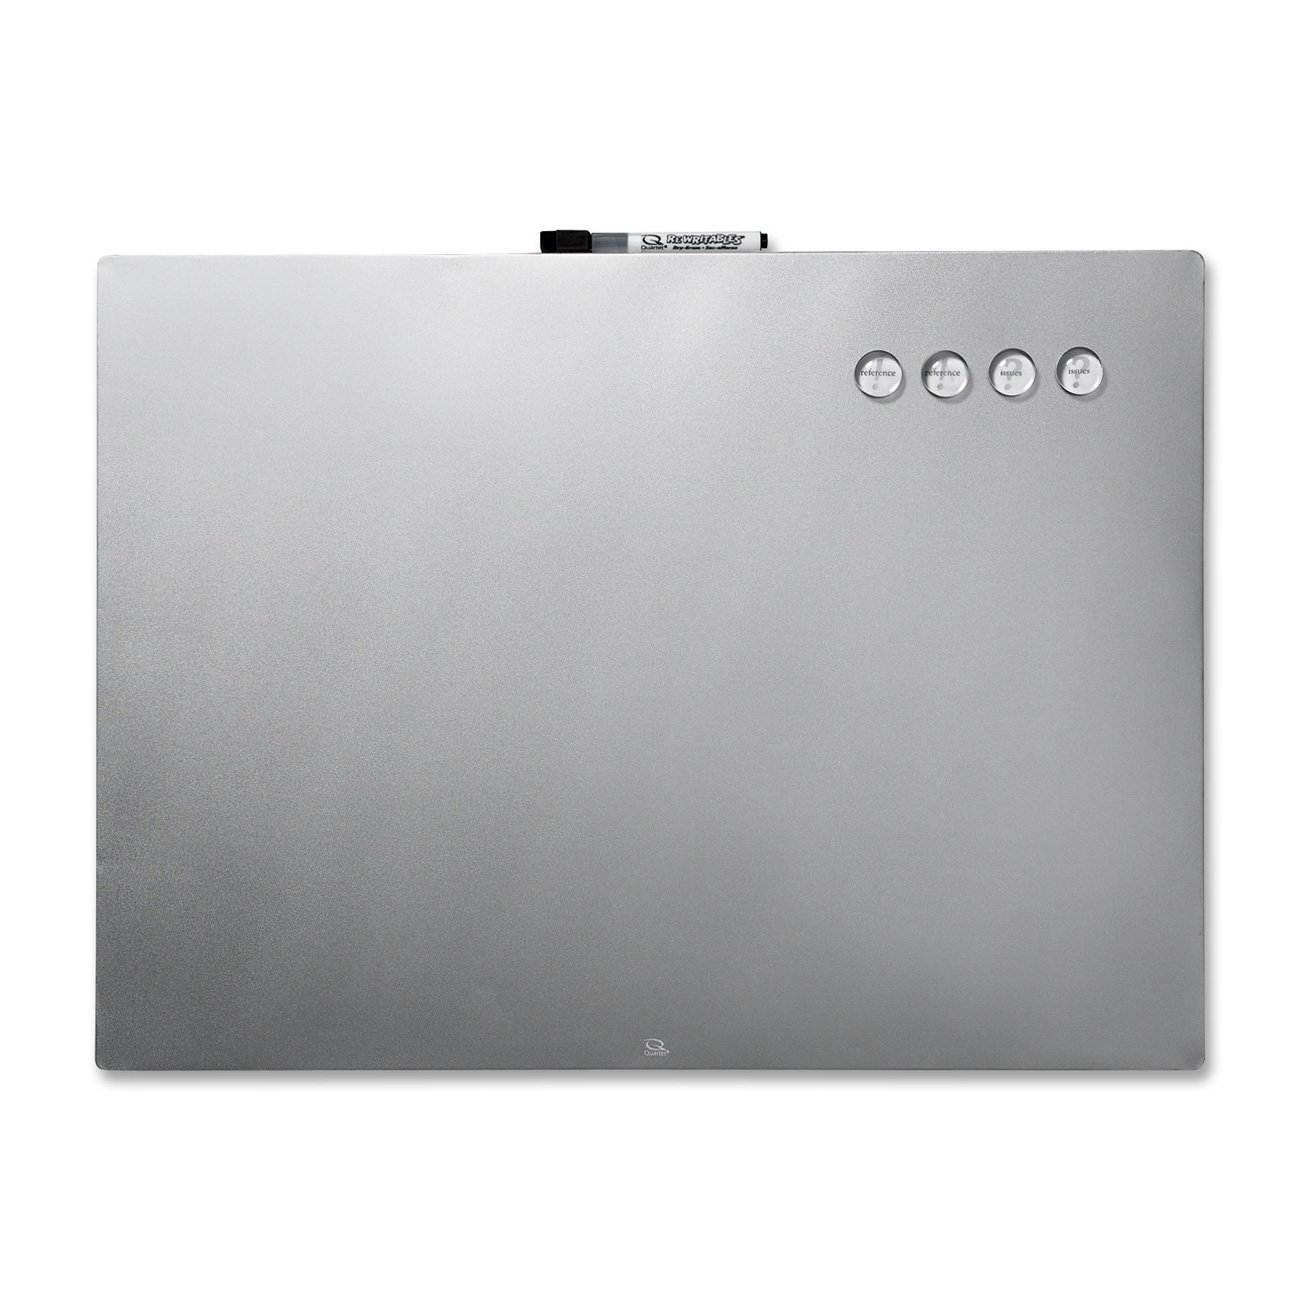 stainless steel dry erase boards clean and strong. Black Bedroom Furniture Sets. Home Design Ideas